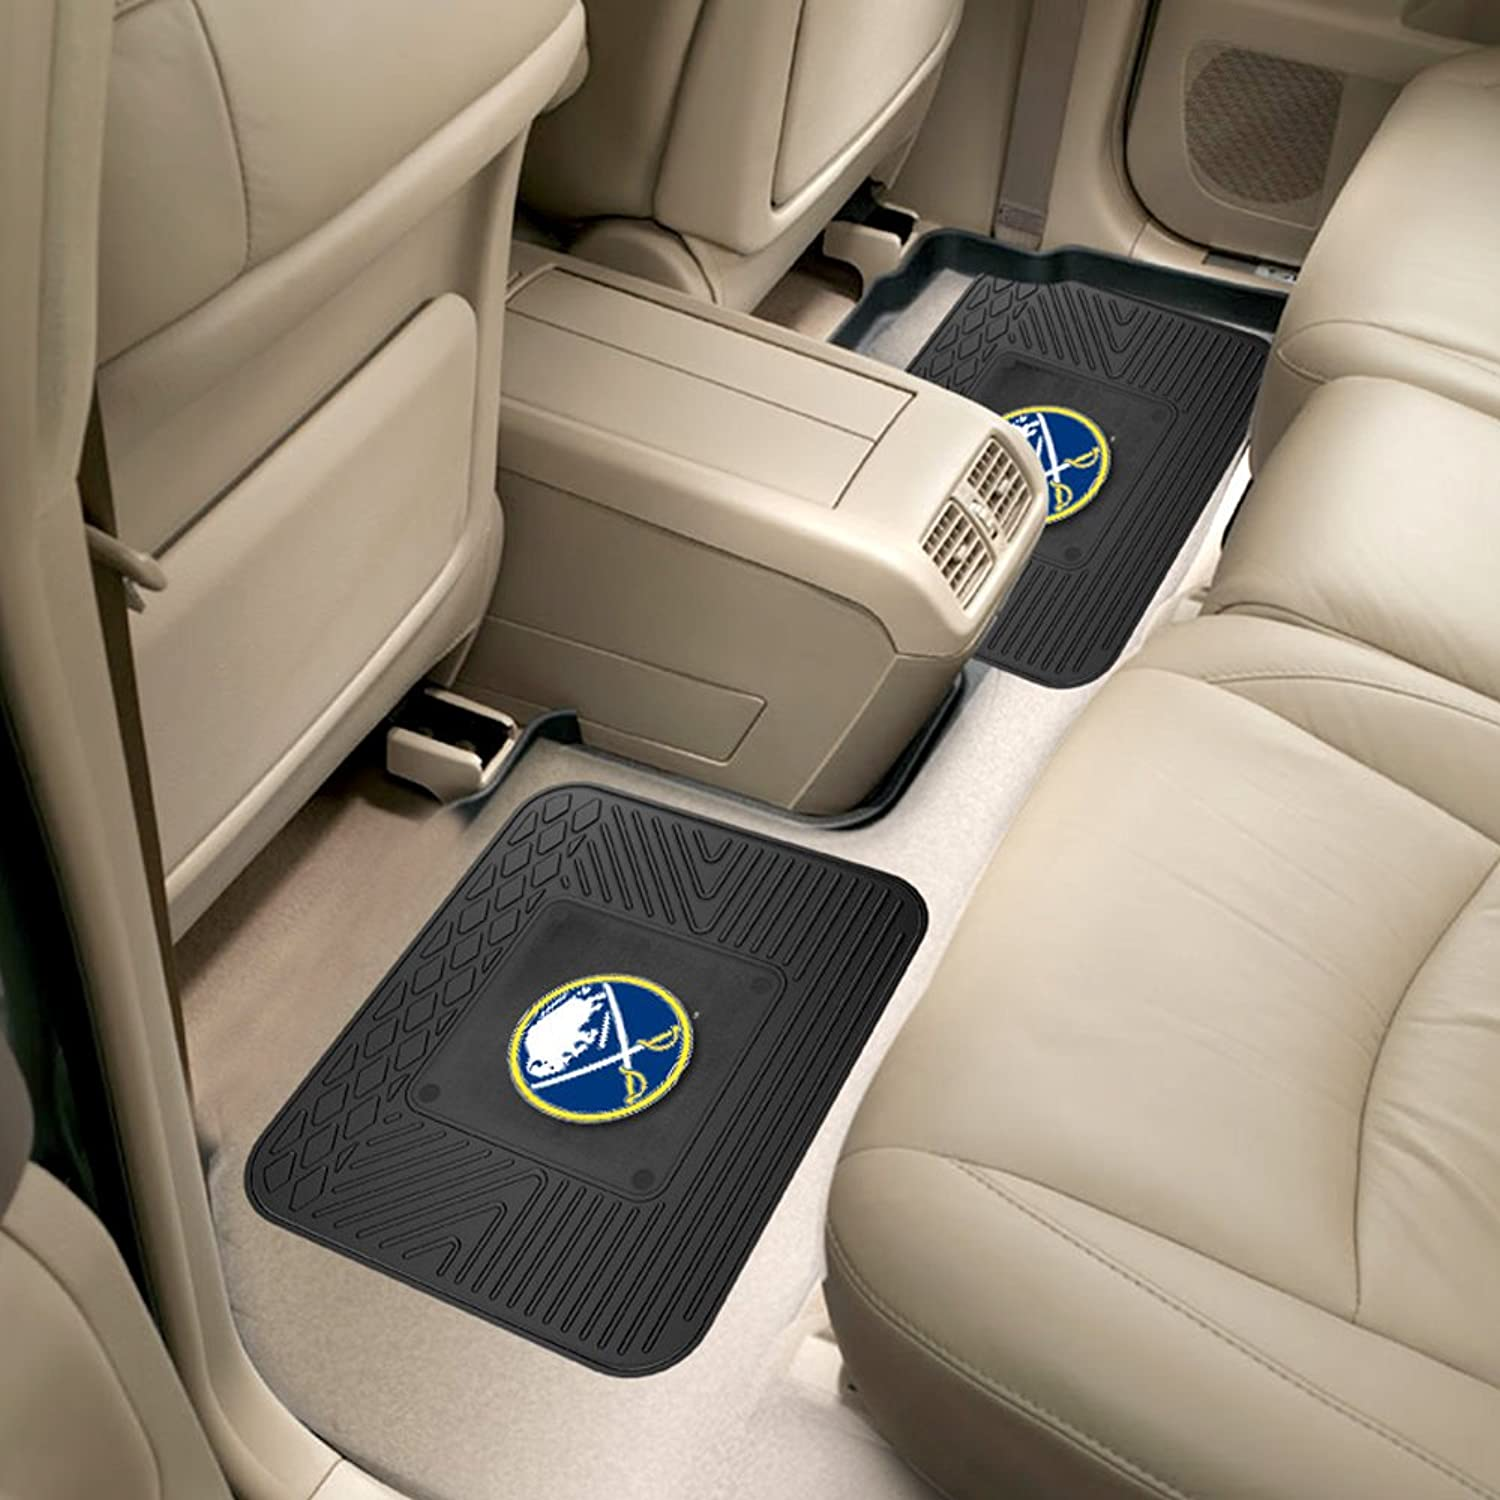 Fanmats Sports Team Logo NHL - Buffalo Sabres Backseat Car Utility Mats 2 Pack